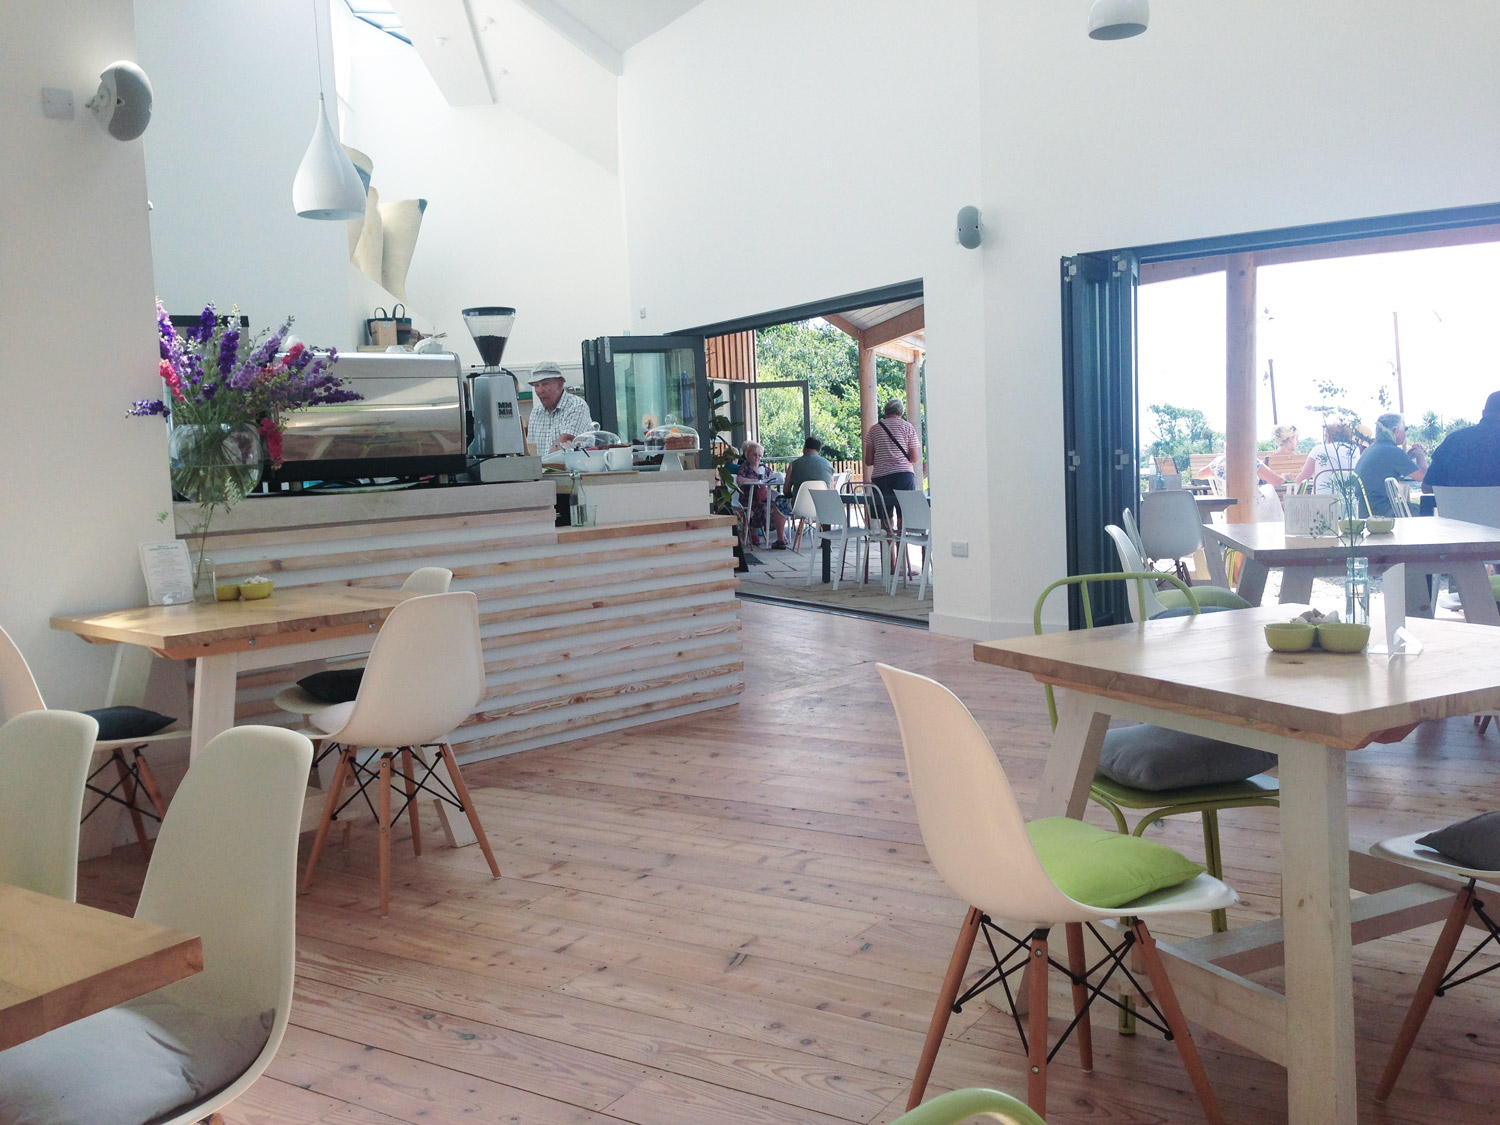 Commercial architect designed building in Cornwall Cafe